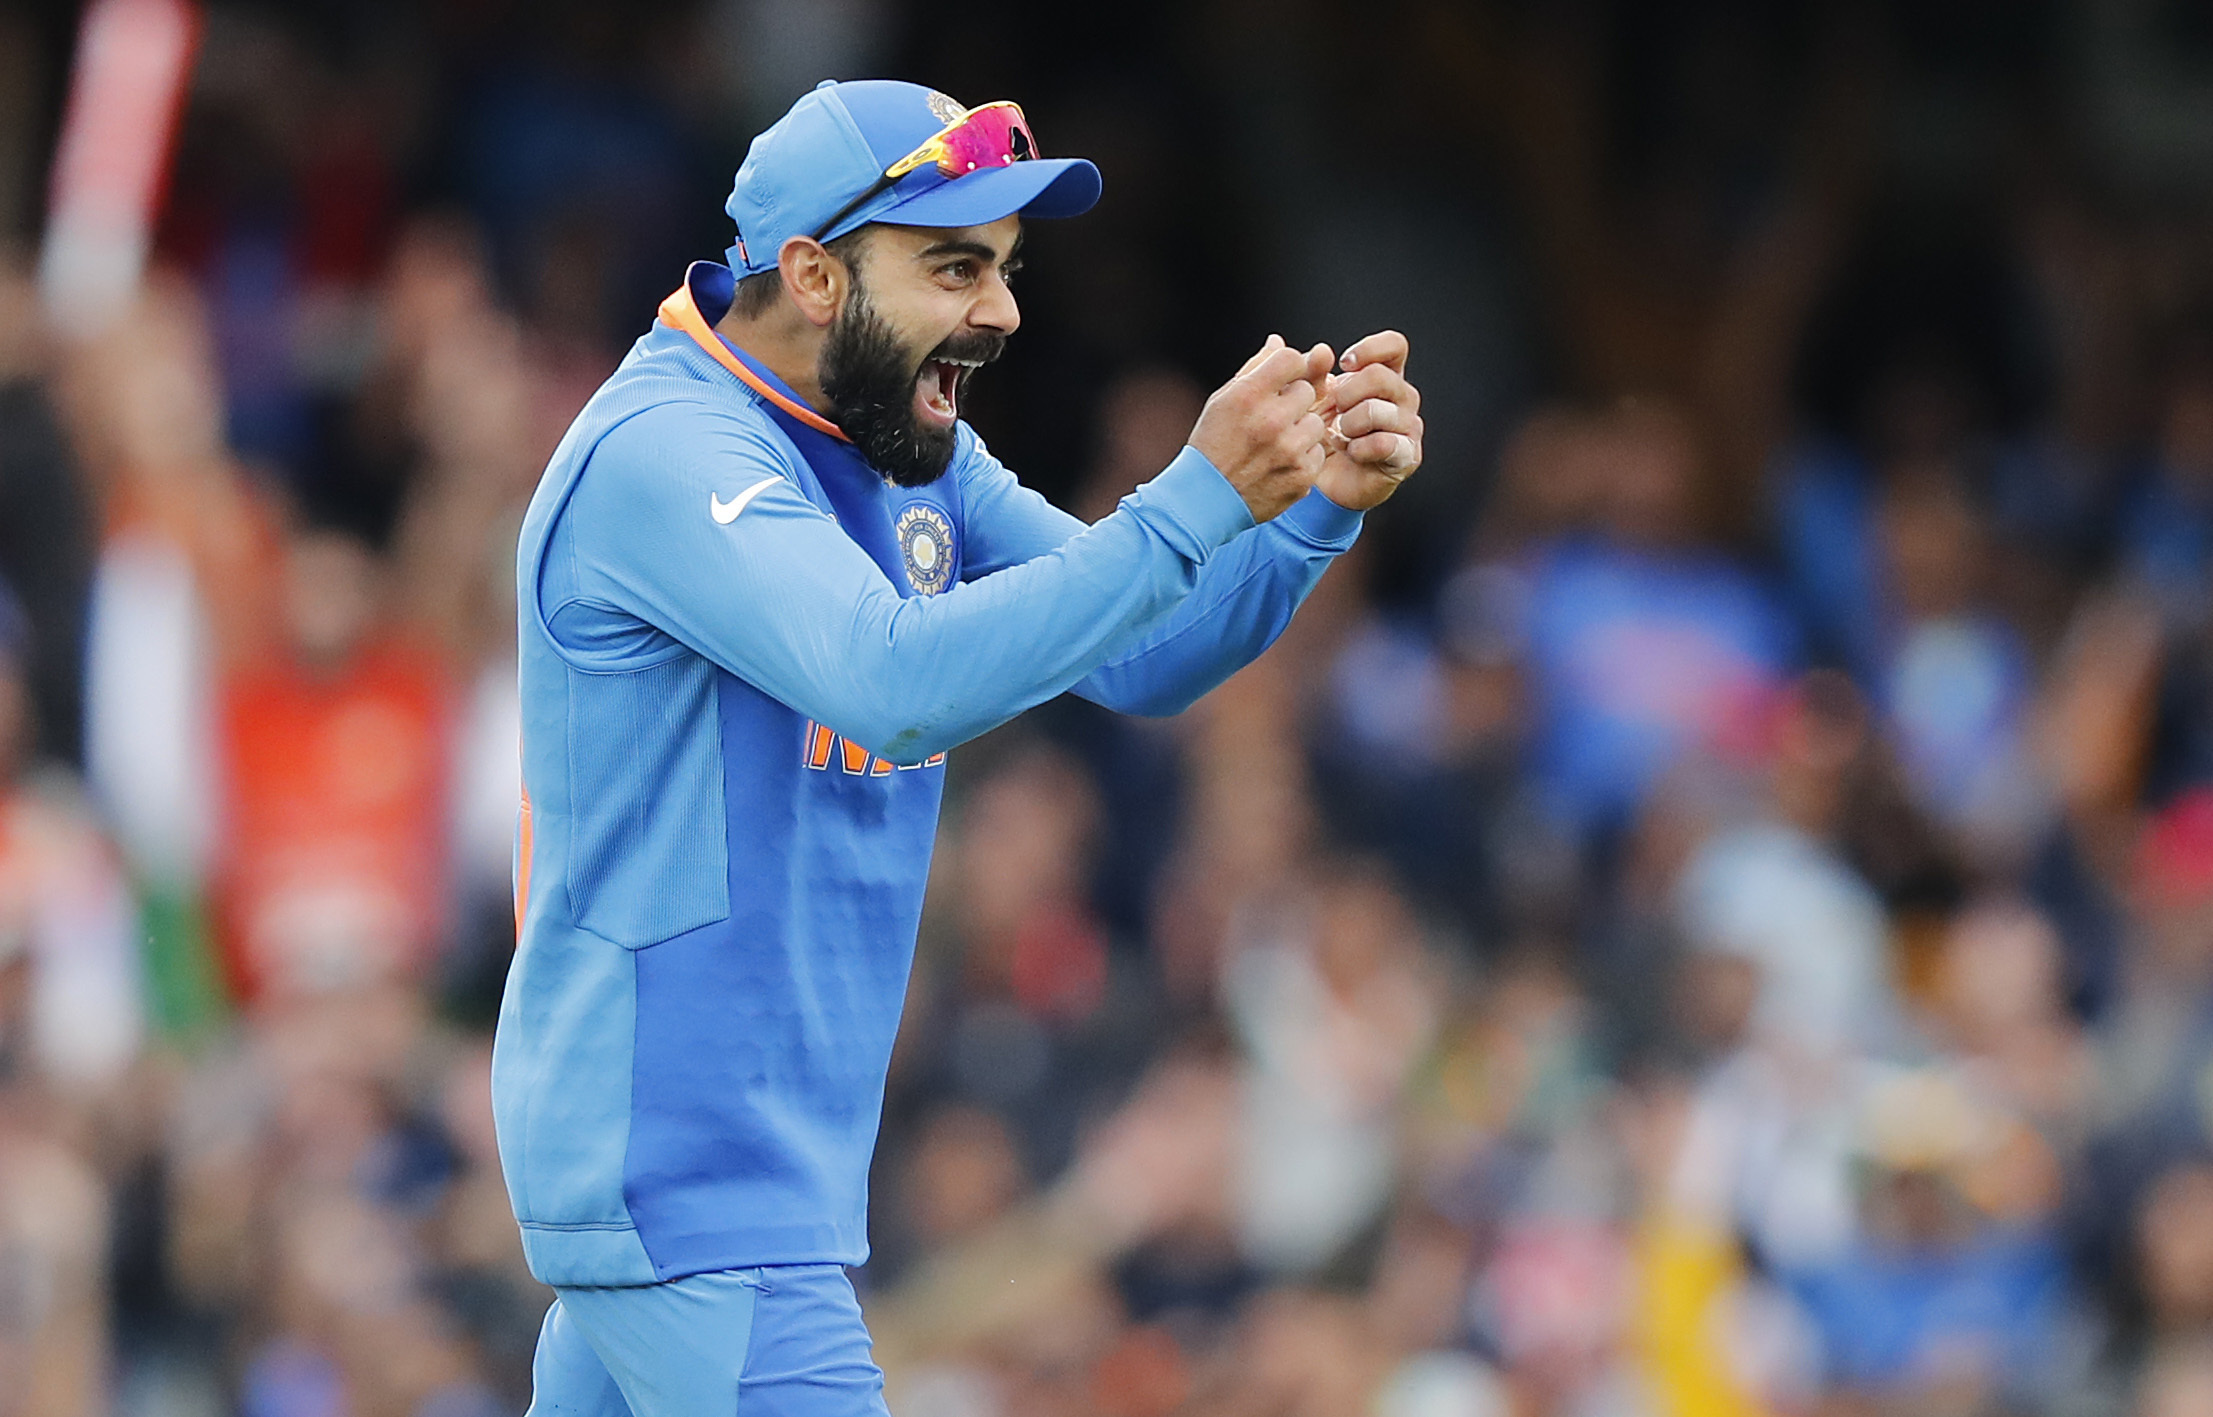 India's captain Virat Kohli celebrates after winning the match between India and Australia at the Oval in London on June 9.